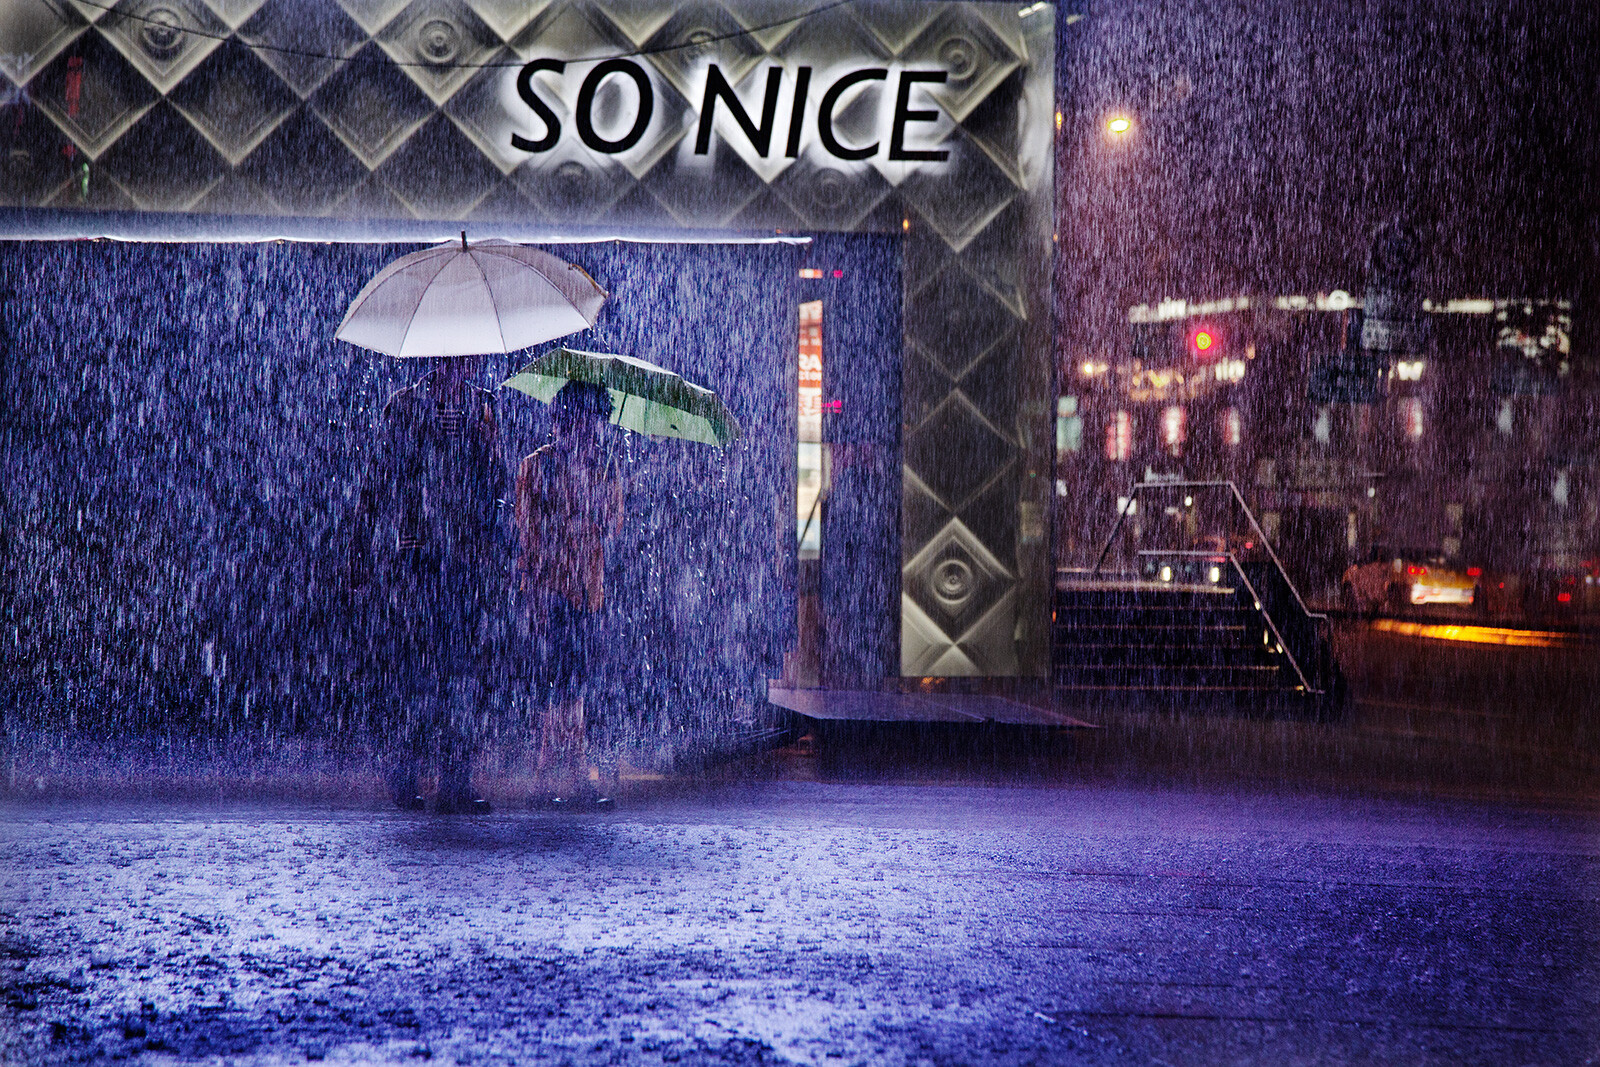 So nice! by Christophe Jacrot